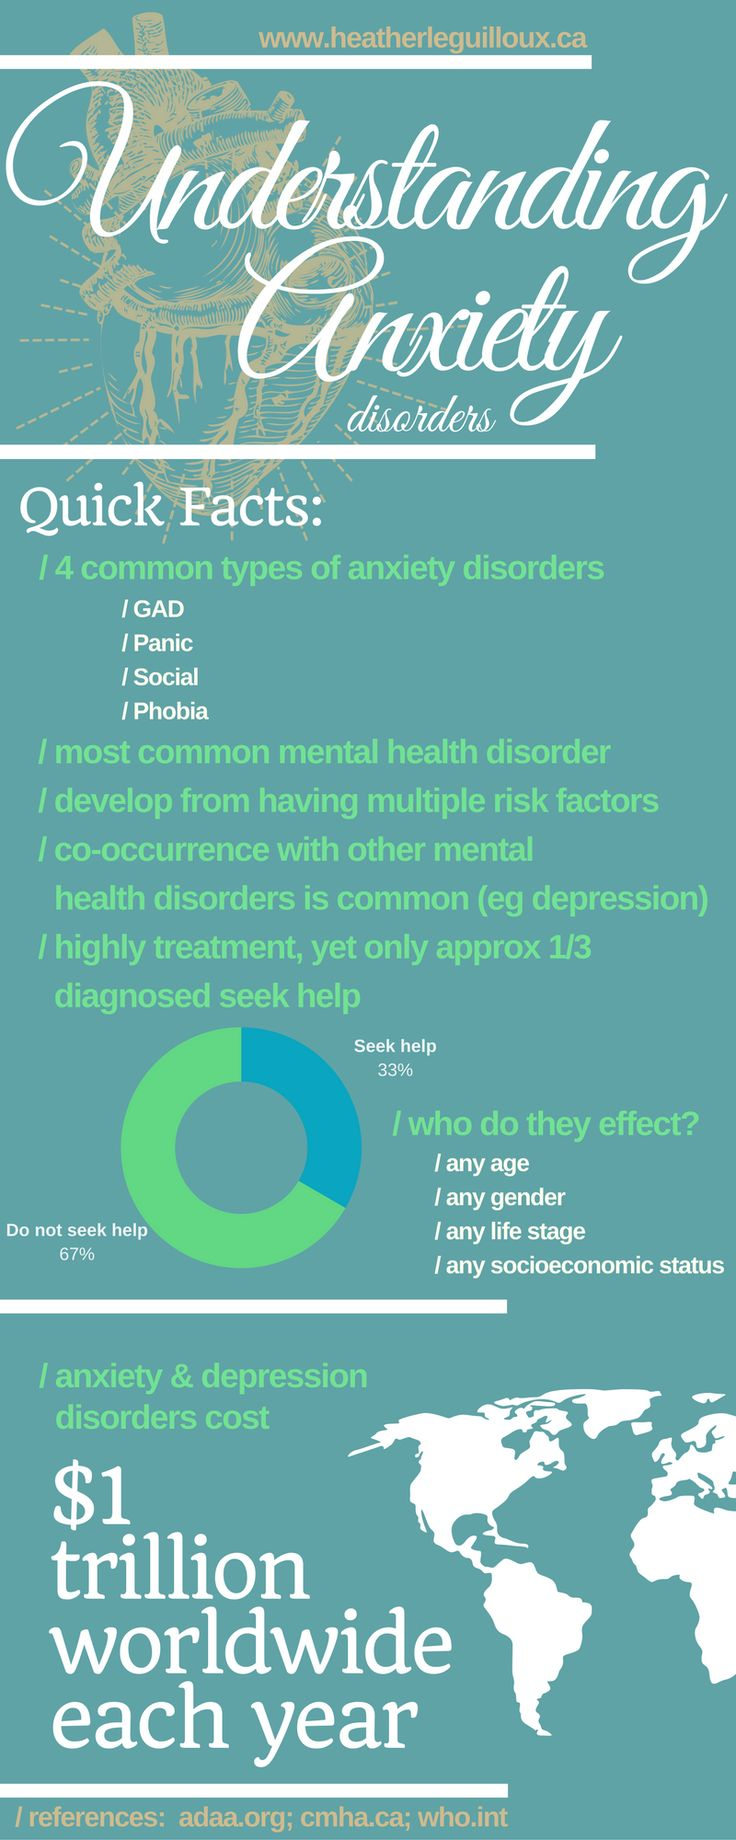 Understanding Anxiety Disorders - Infographic. Blog article series focusing on anxiety & anxiety disorders @hleguilloux | anxiety | mental health | disorders | facts | therapy